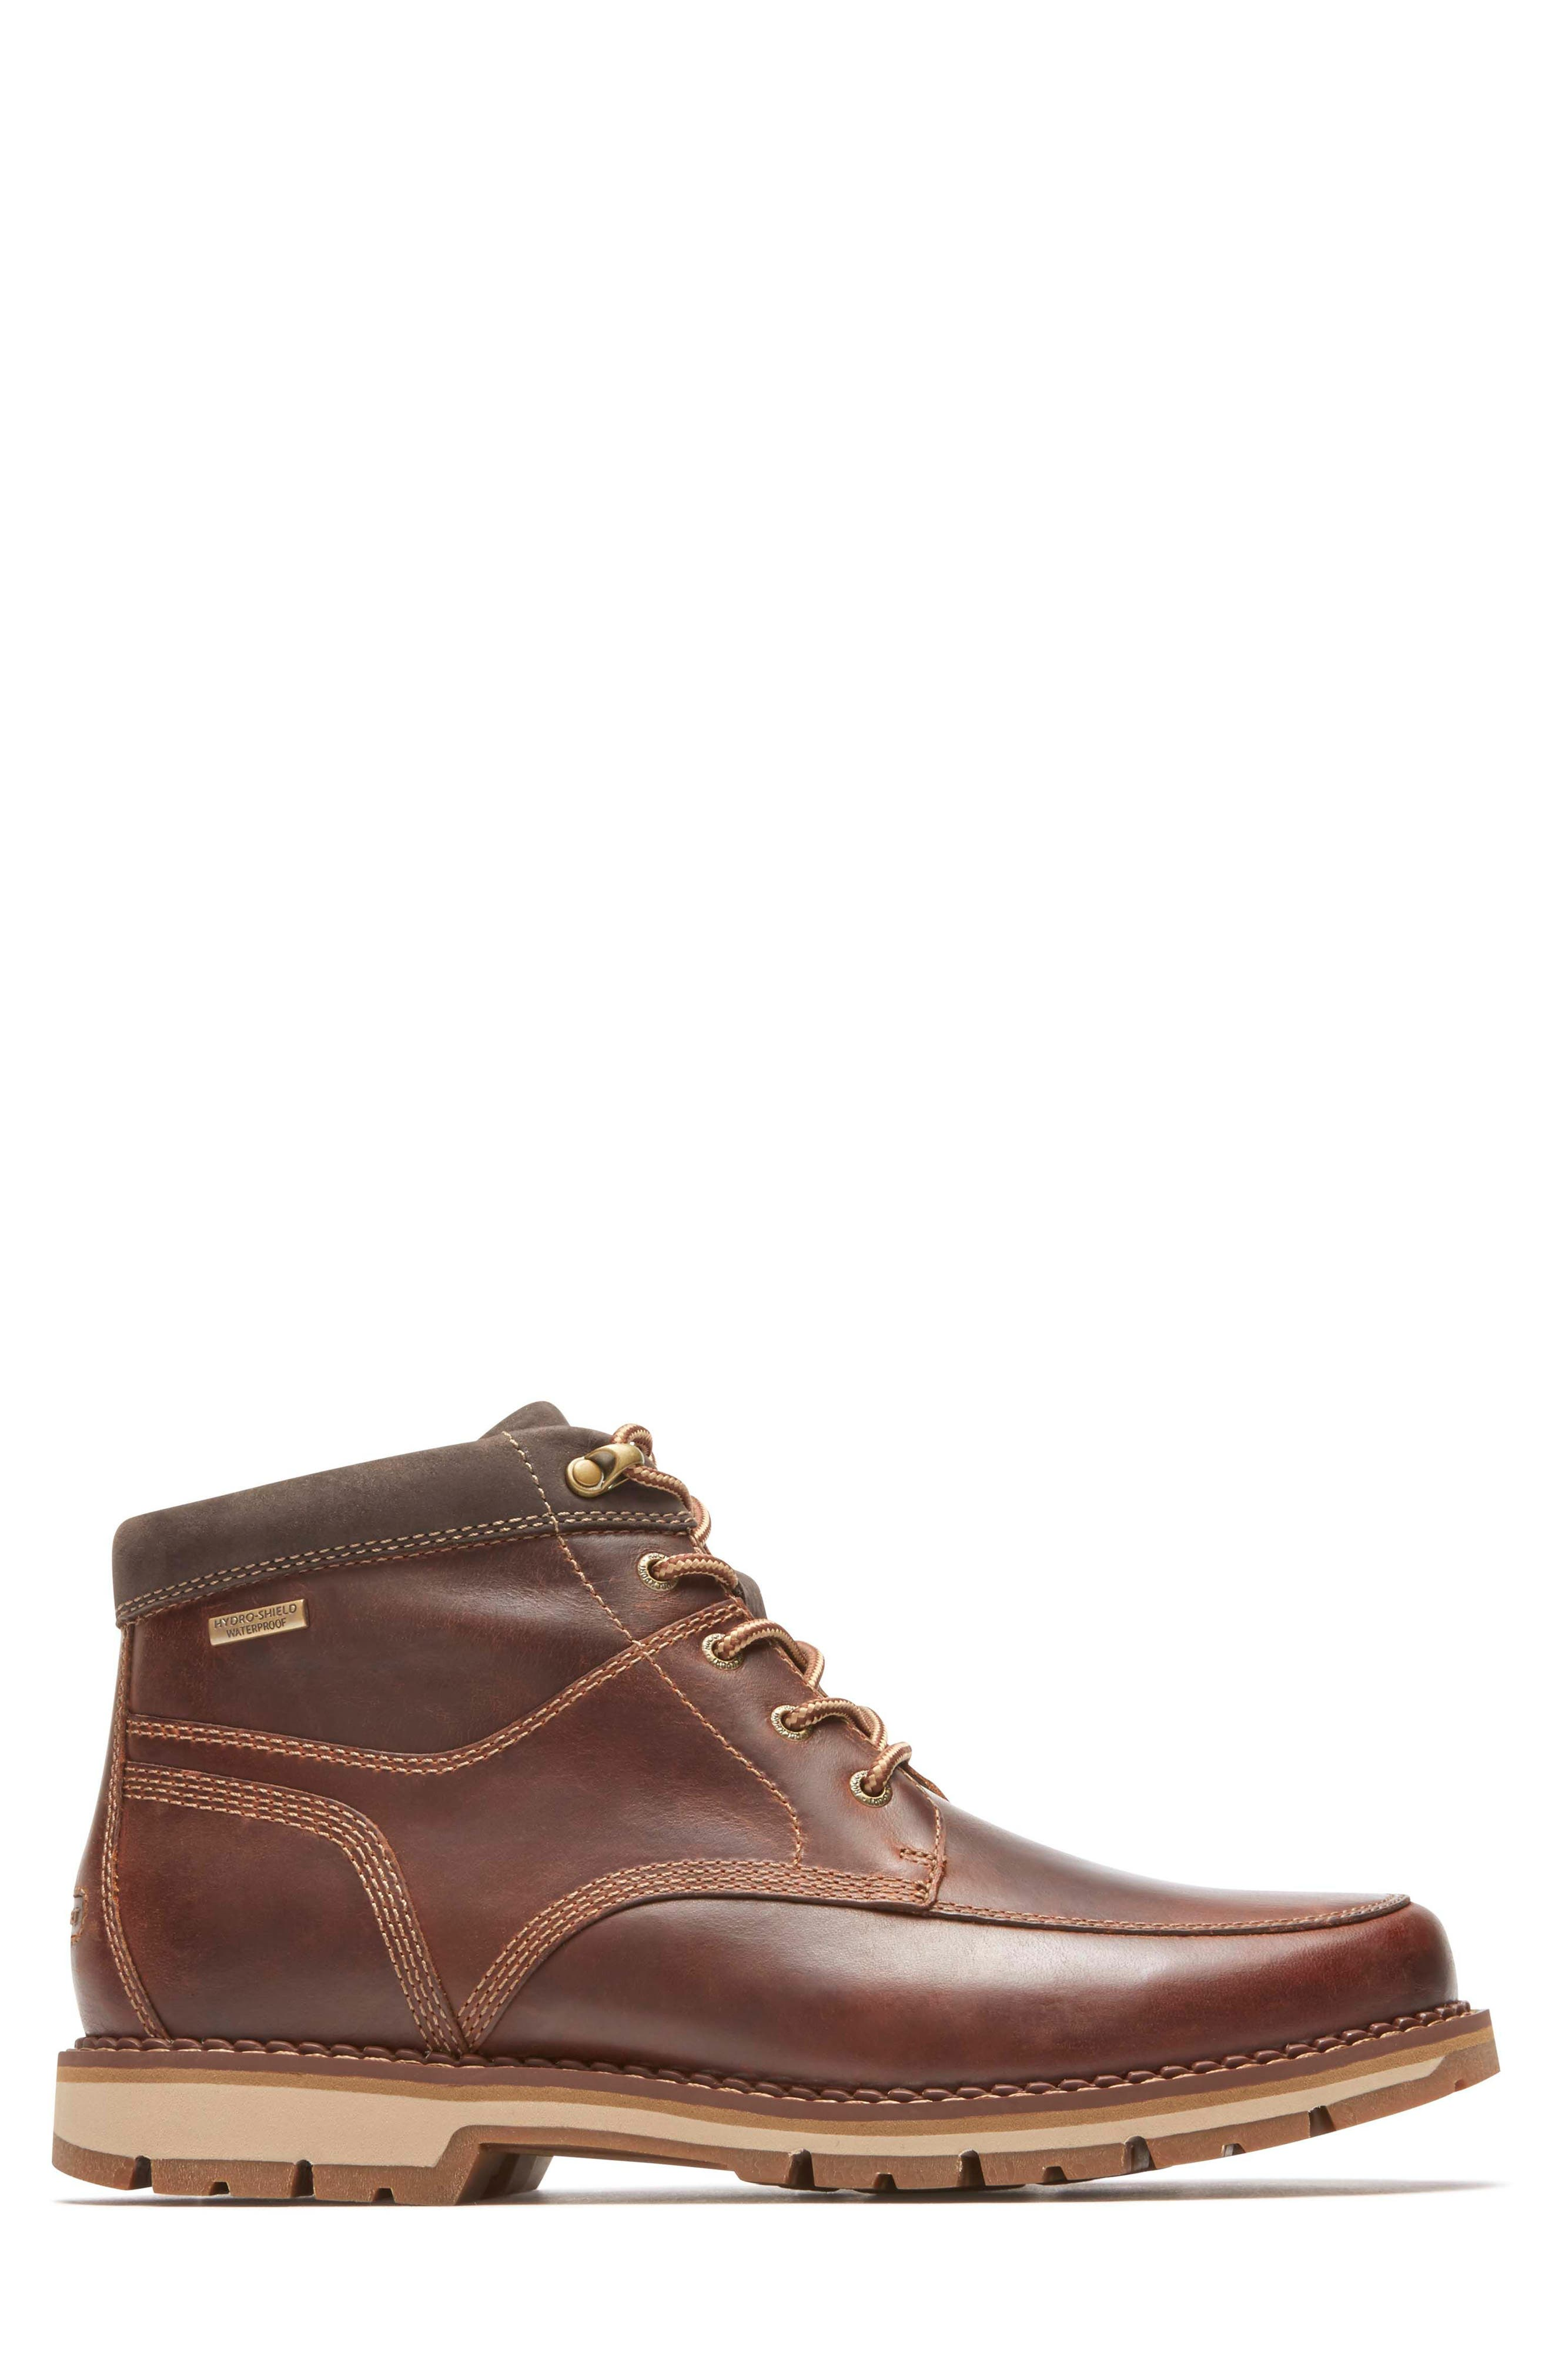 Centry Moc Toe Boot,                             Alternate thumbnail 3, color,                             Brown Leather